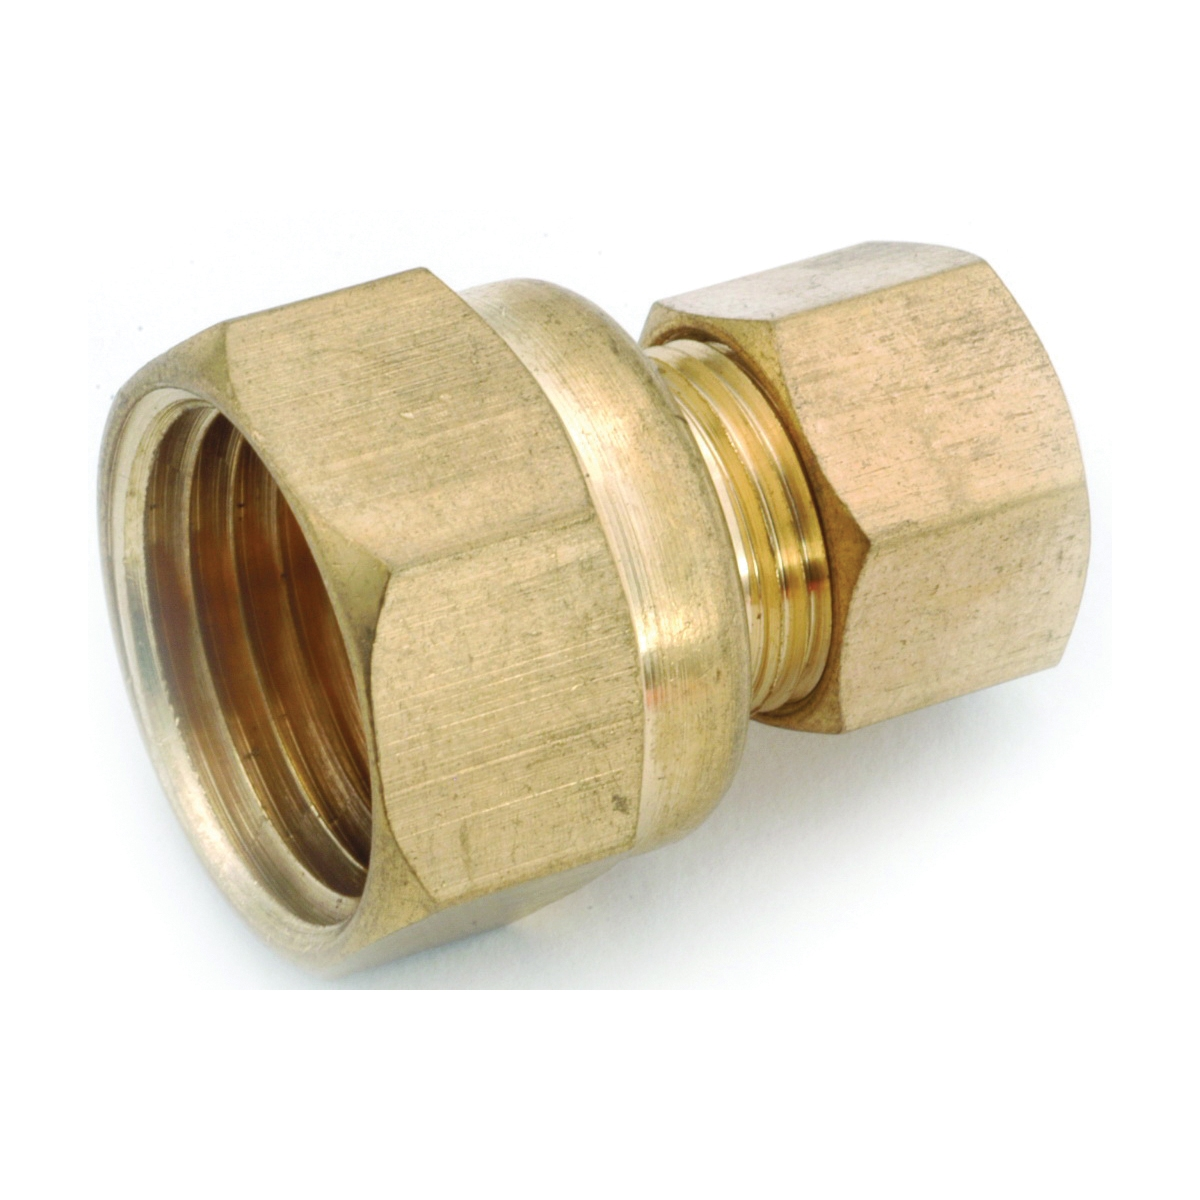 Picture of Anderson Metals 750066-0504 Tubing Coupling, 5/16 x 1/4 in, Compression x FIP, Brass